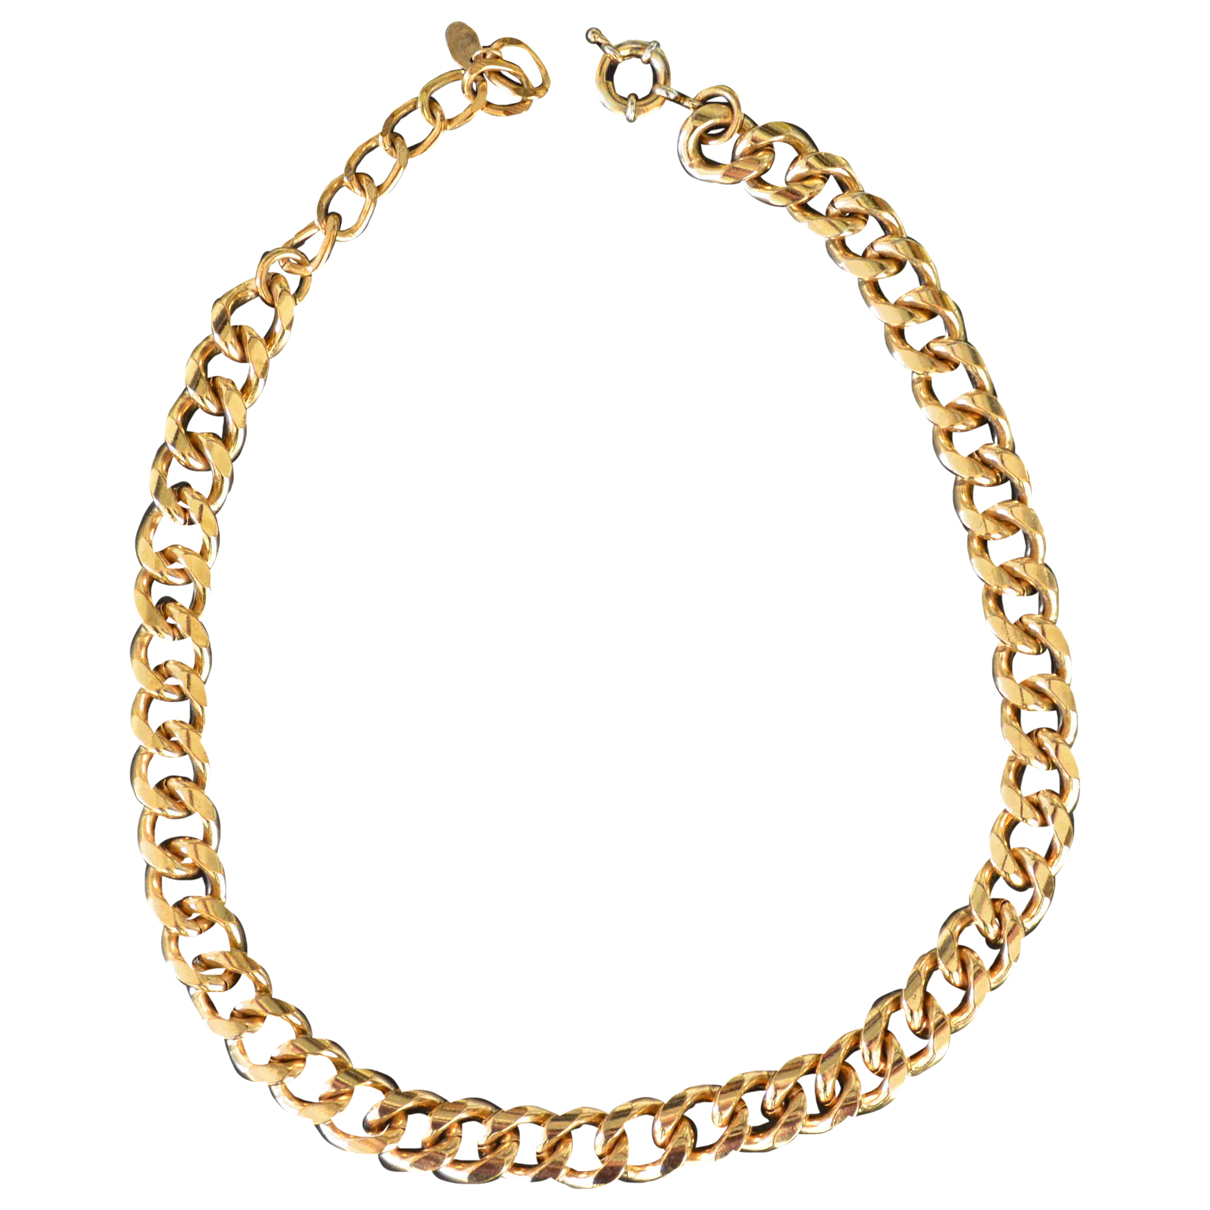 Non Signe / Unsigned Chaines Kette in  Gold Metall